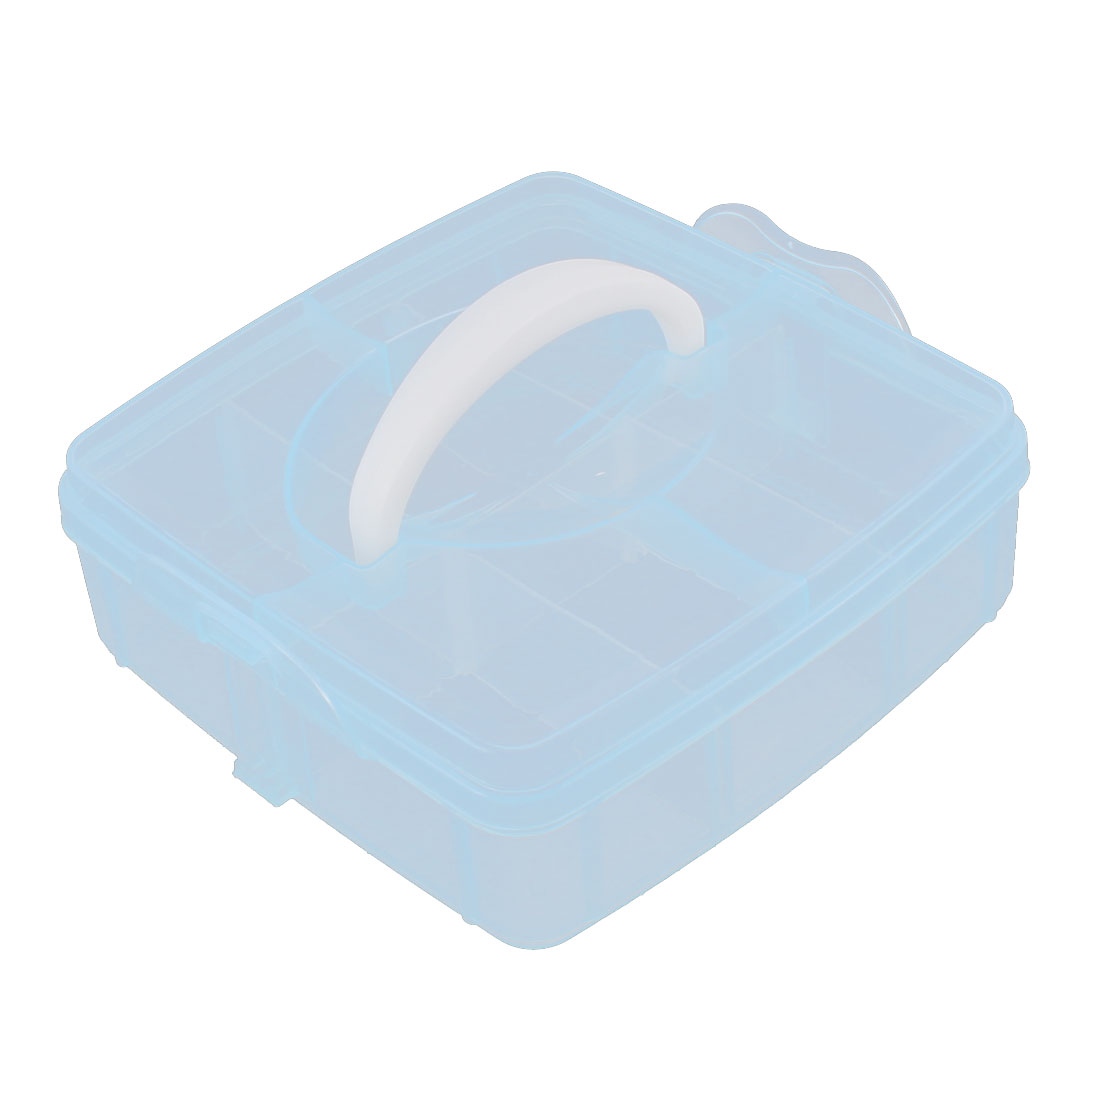 Jewelry Fishing Hook Plastic 6 Compartments Storage Case Box Organizer Clear Blue